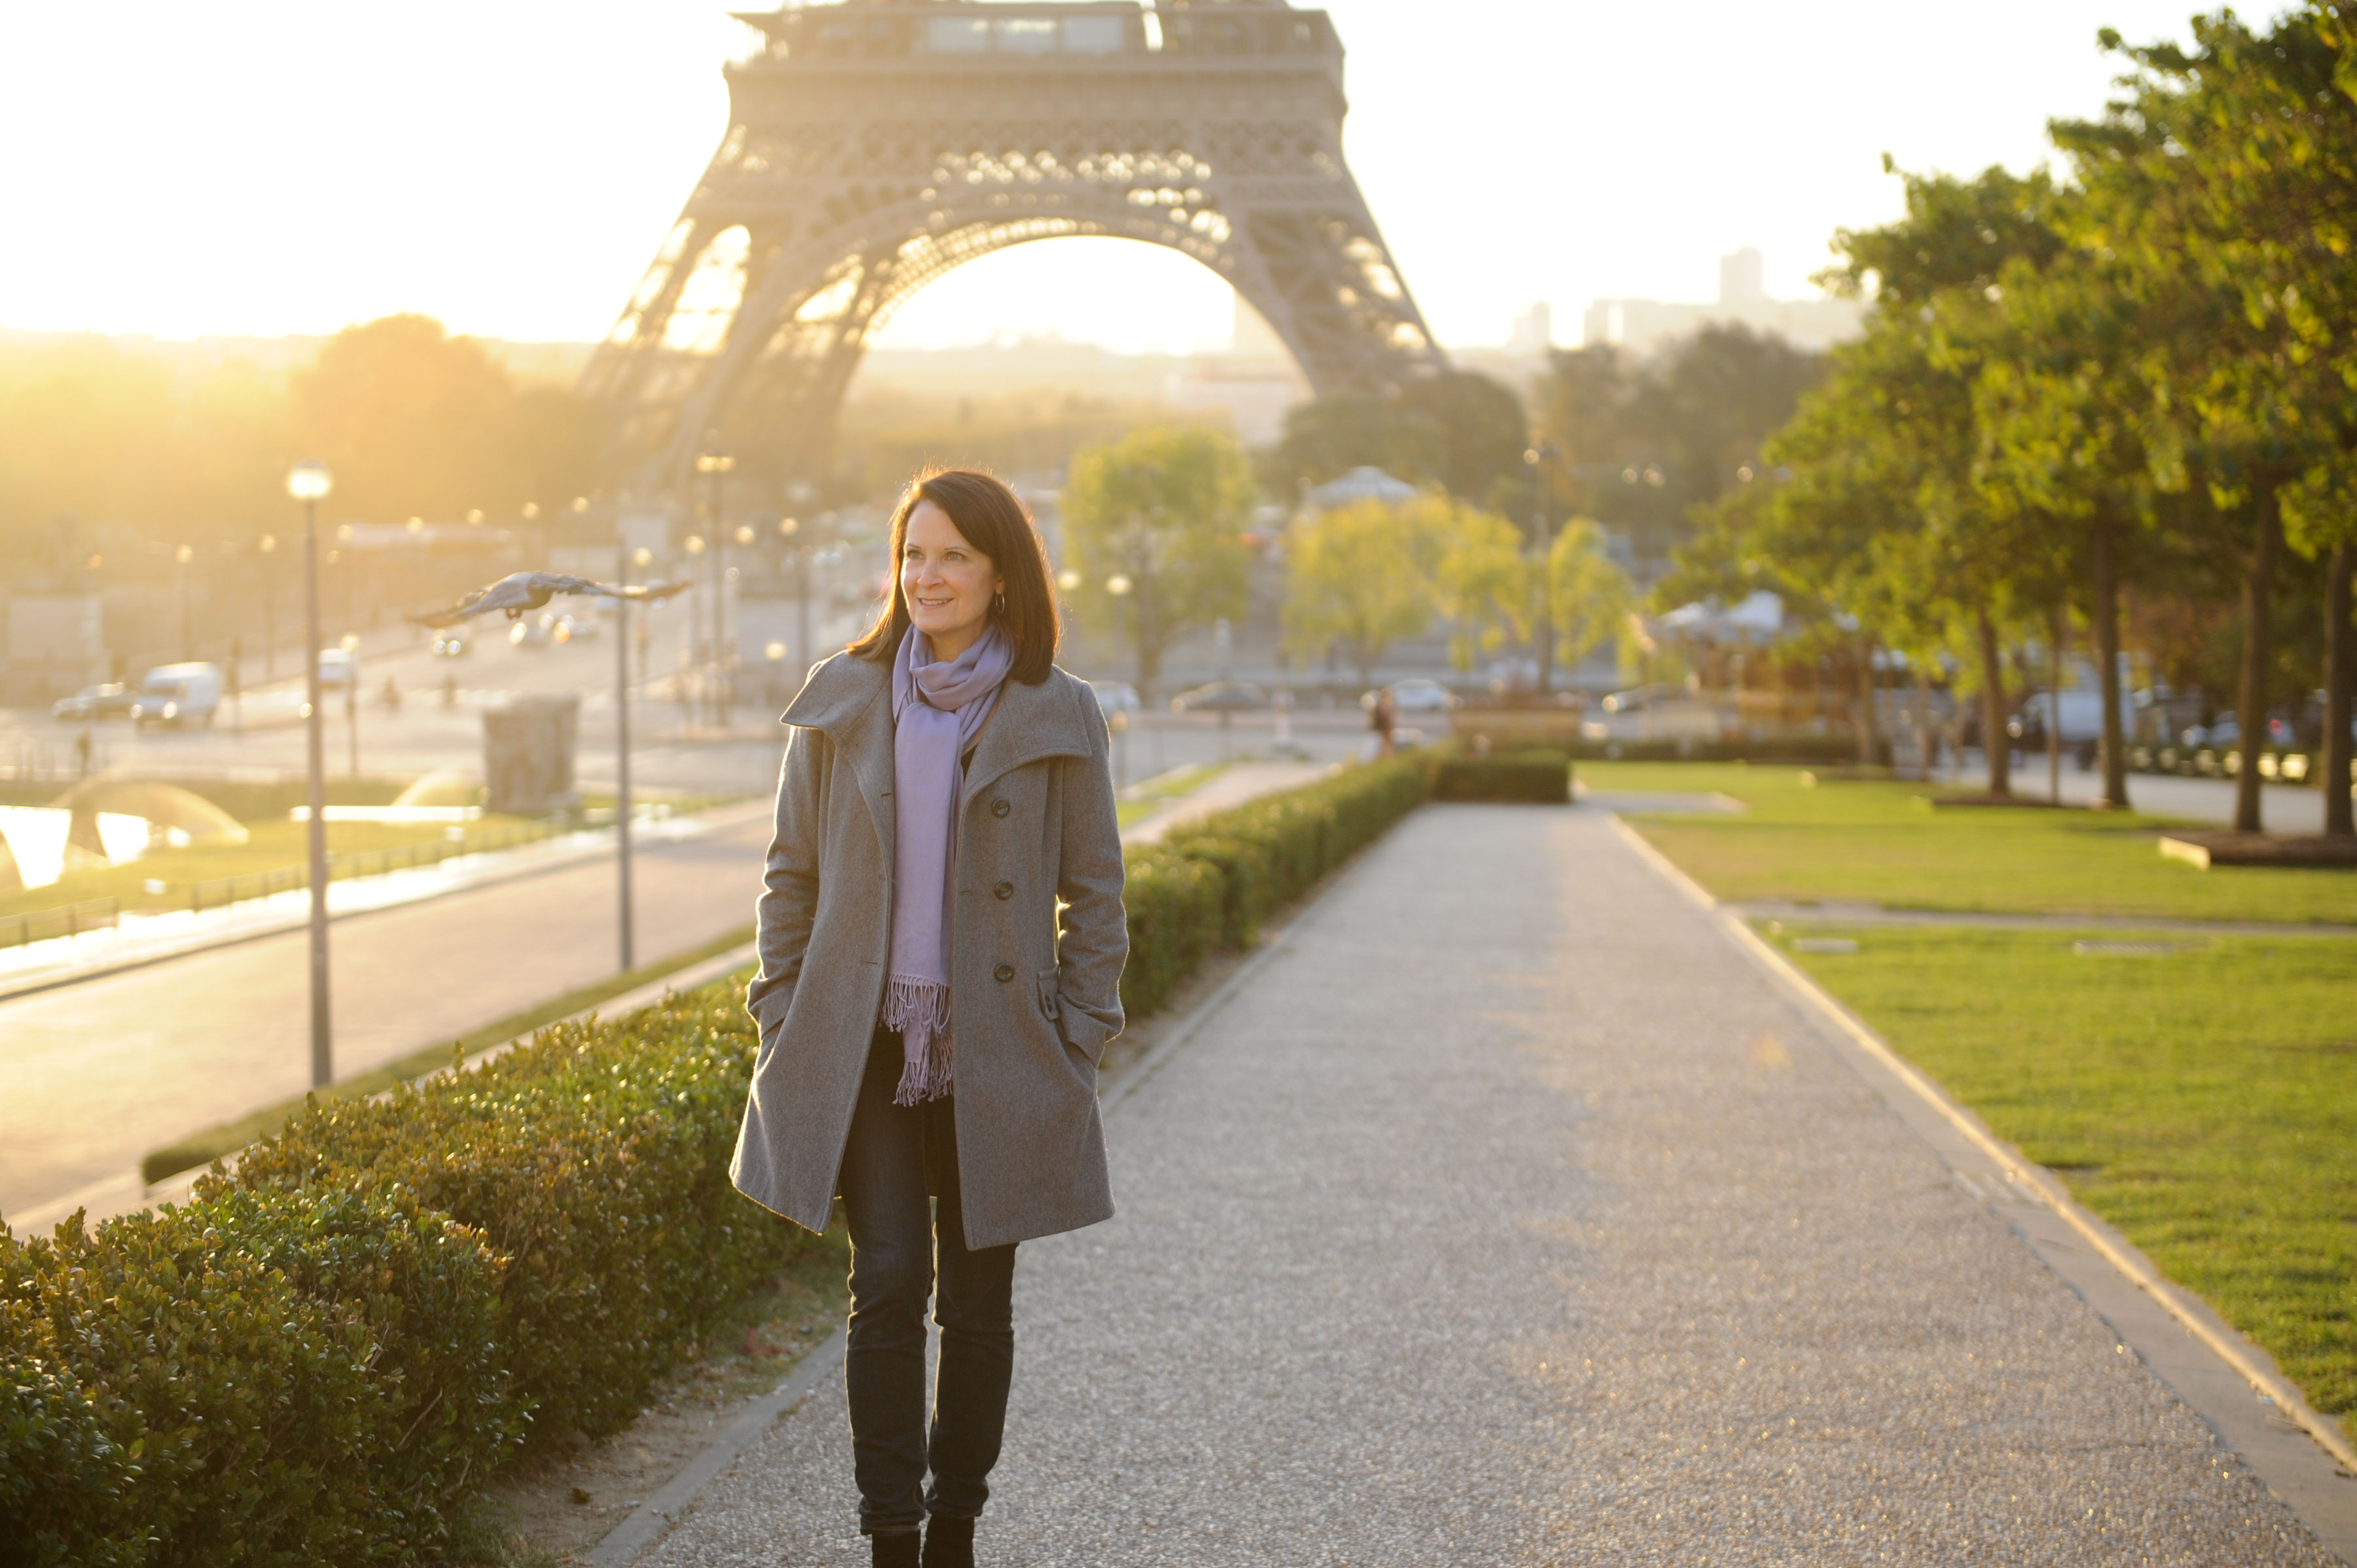 Just out for a walk in Paris!